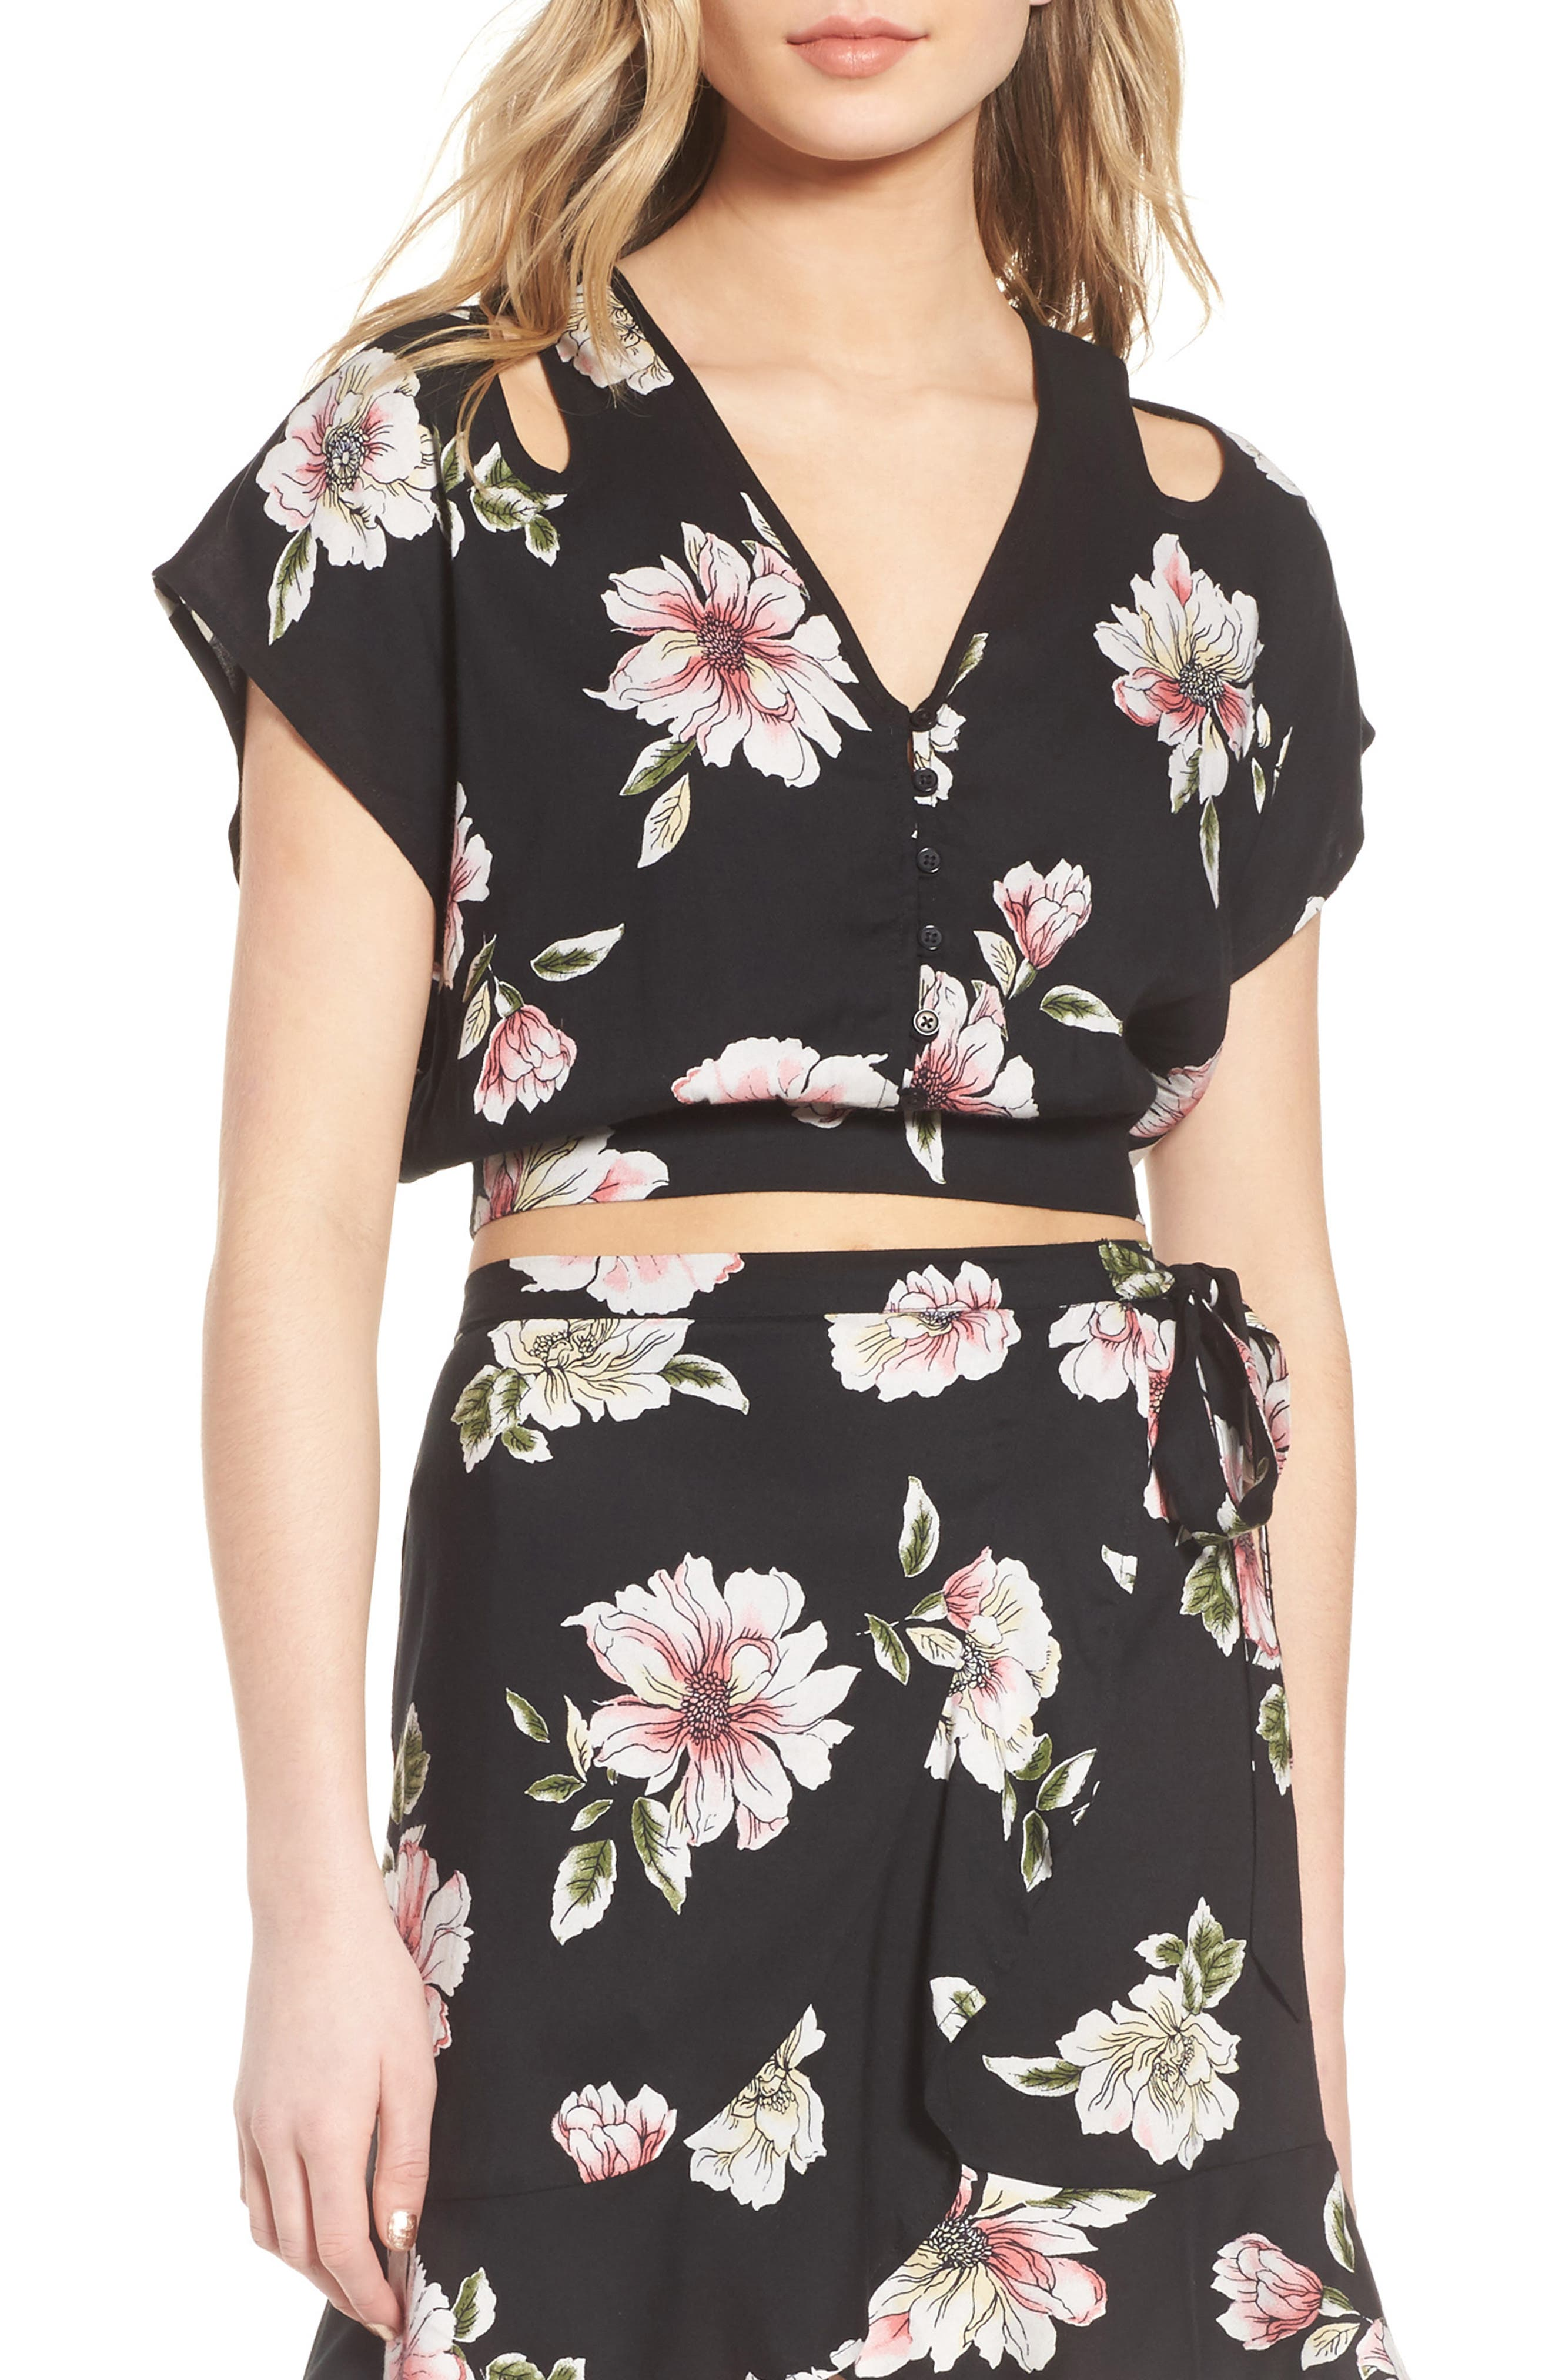 Main Image - Band of Gypsies Hibiscus Cutout Crop Top